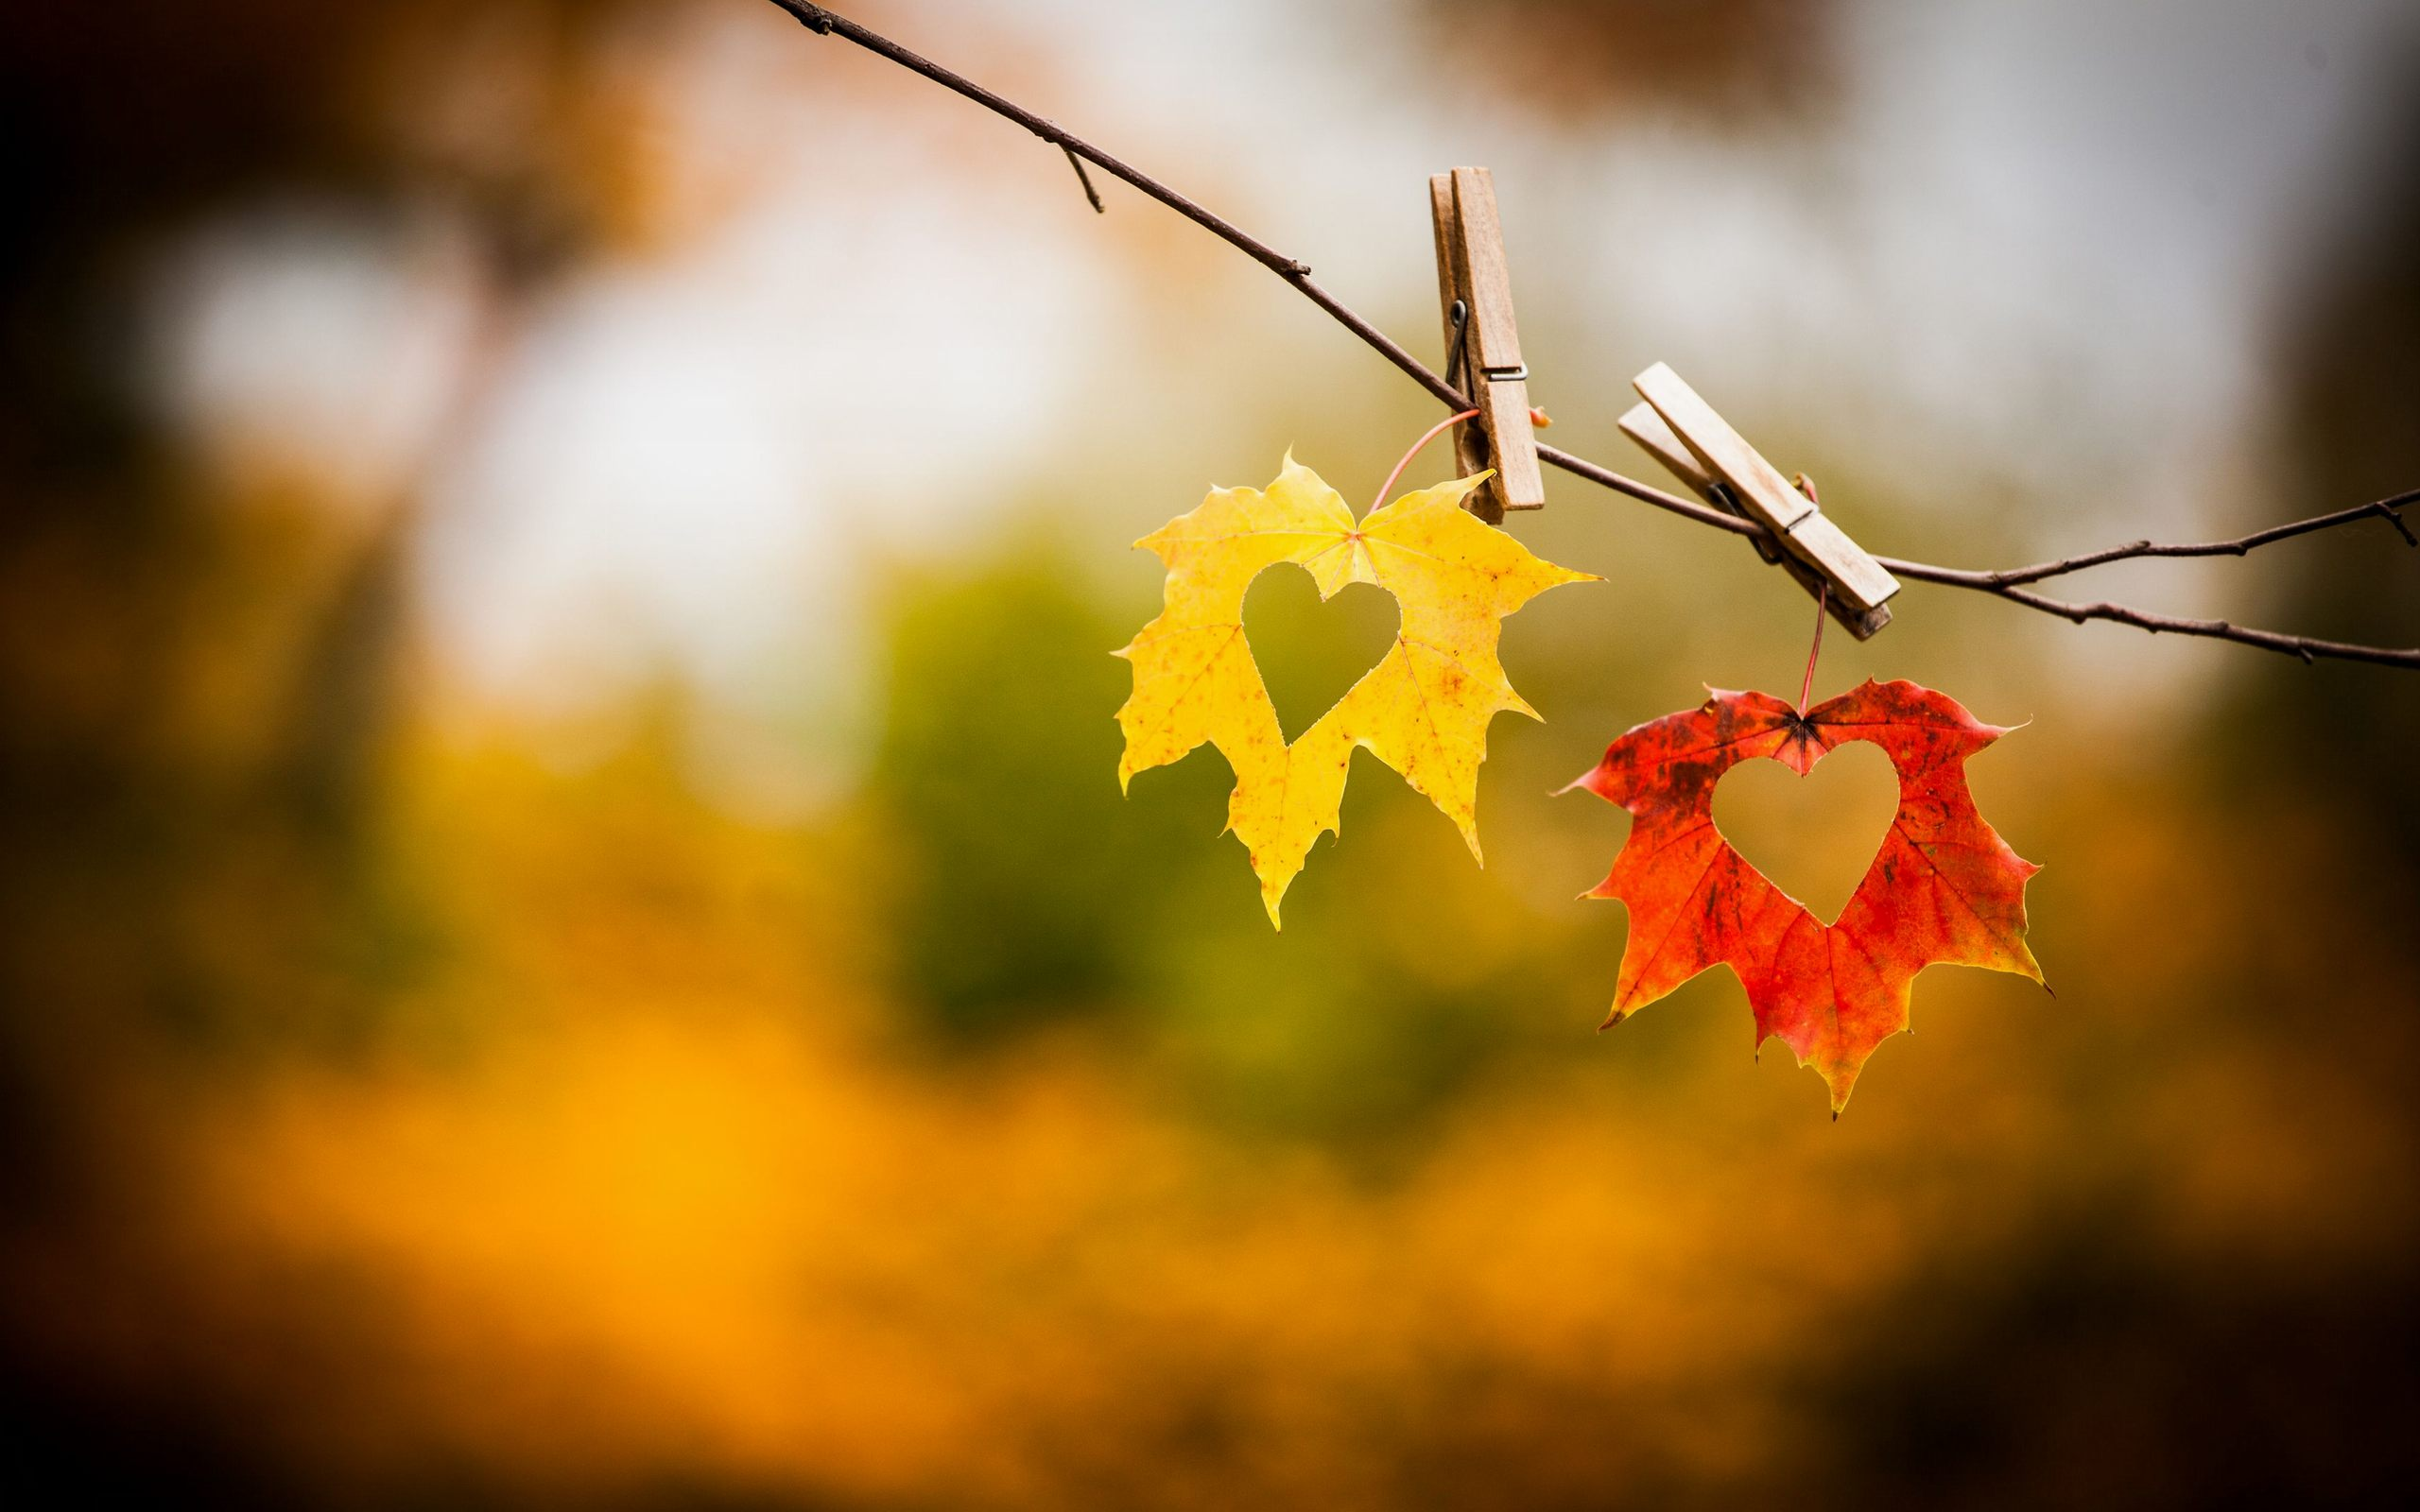 Free Download Autumn Love Heart Wallpaper Hd Download Of Love Art 2560x1600 For Your Desktop Mobile Tablet Explore 78 Images Of Love Wallpaper Heart Love Wallpaper Images Best Love